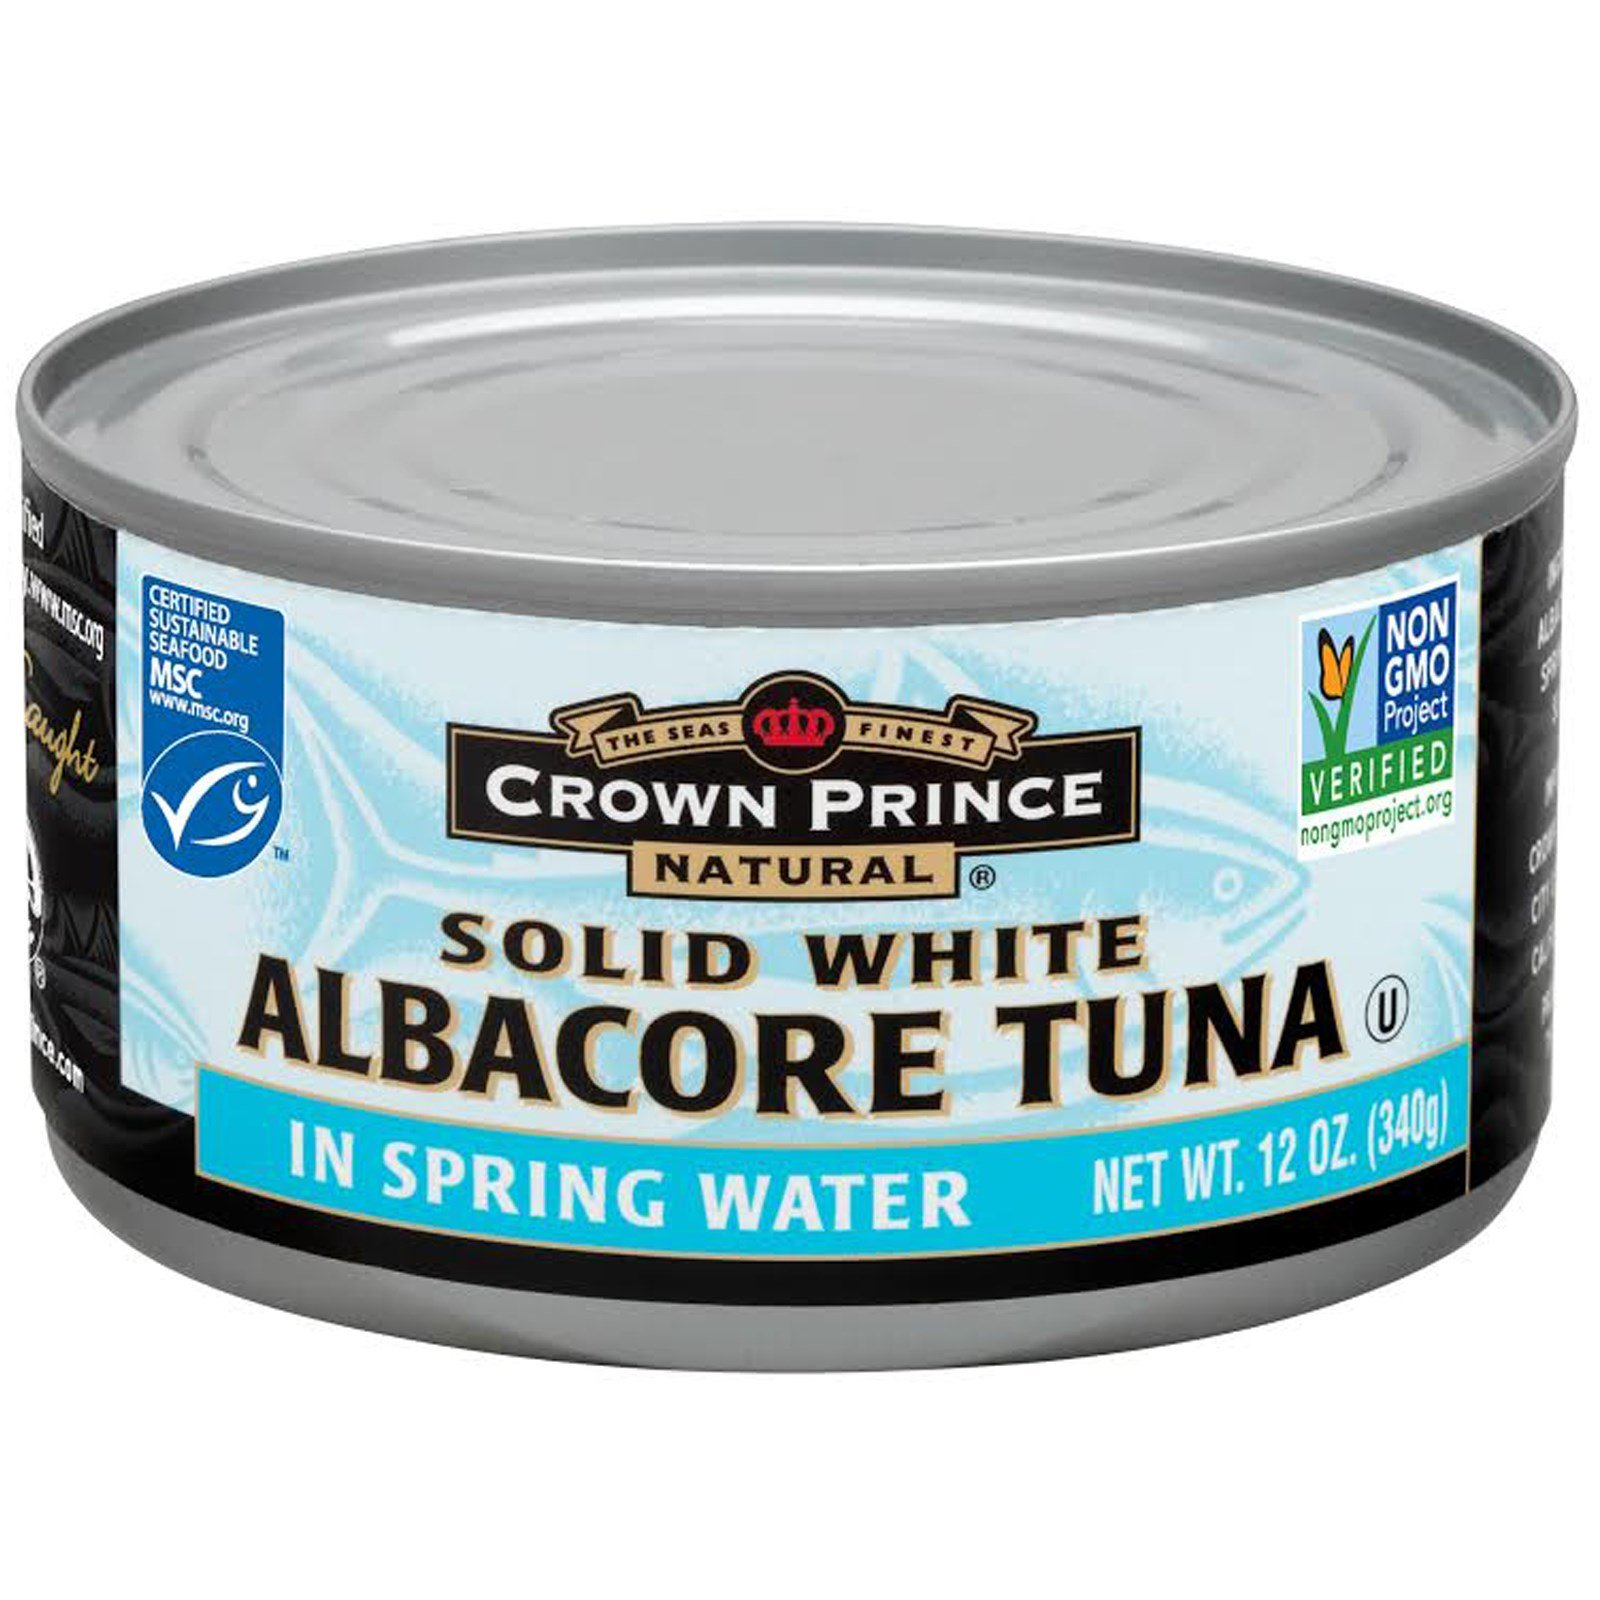 Crown Prince Natural, Solid White Albacore Tuna, In Spring Water, 12 oz (340 g) - 2PC